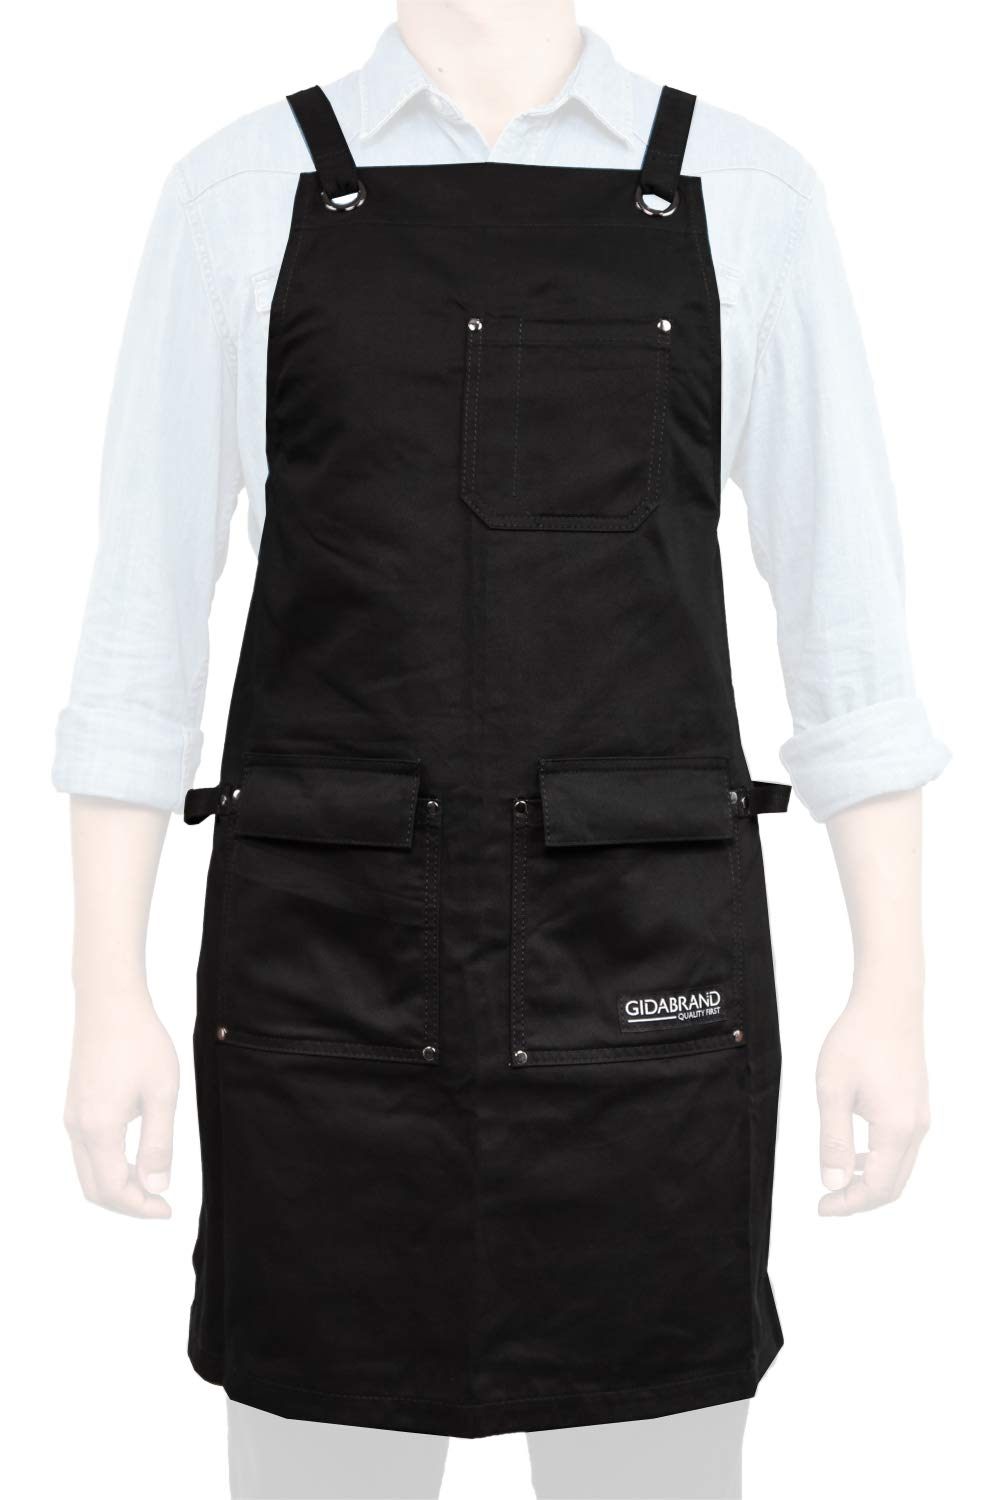 GIDABRAND Professional Grade Chef Kitchen Apron with Double Towel Loop – 10 oz Cotton for Cooking, BBQ and Grill – Men Women Design with 3 Pockets, Quick Release Buckle and Adjustable Strap M to XXL